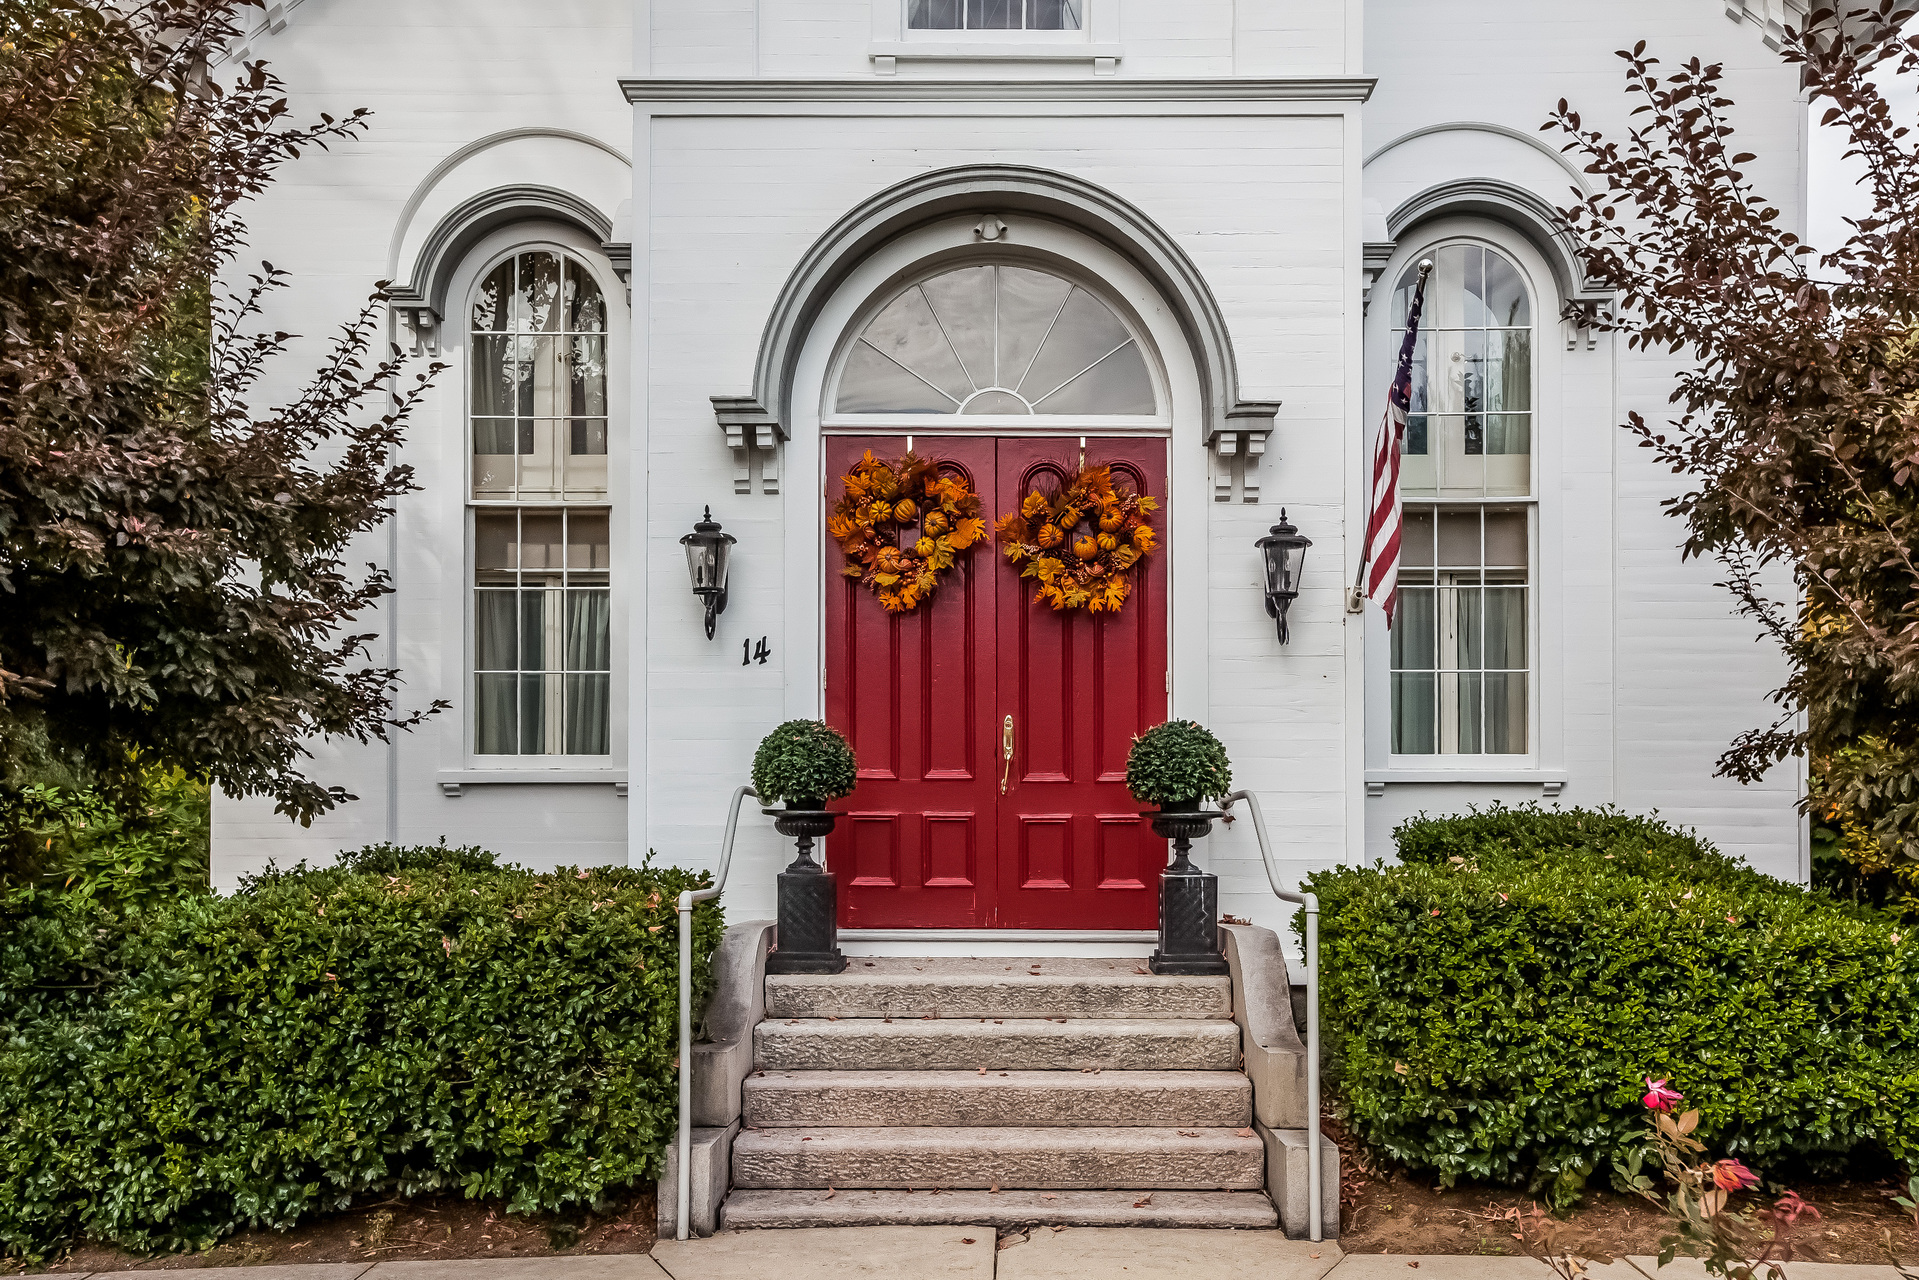 Single Family Home for Sale at Elegant and Spacious Home Beatifully Blends Old & New 14 Lincoln St East Lyme, Connecticut, 06357 United States